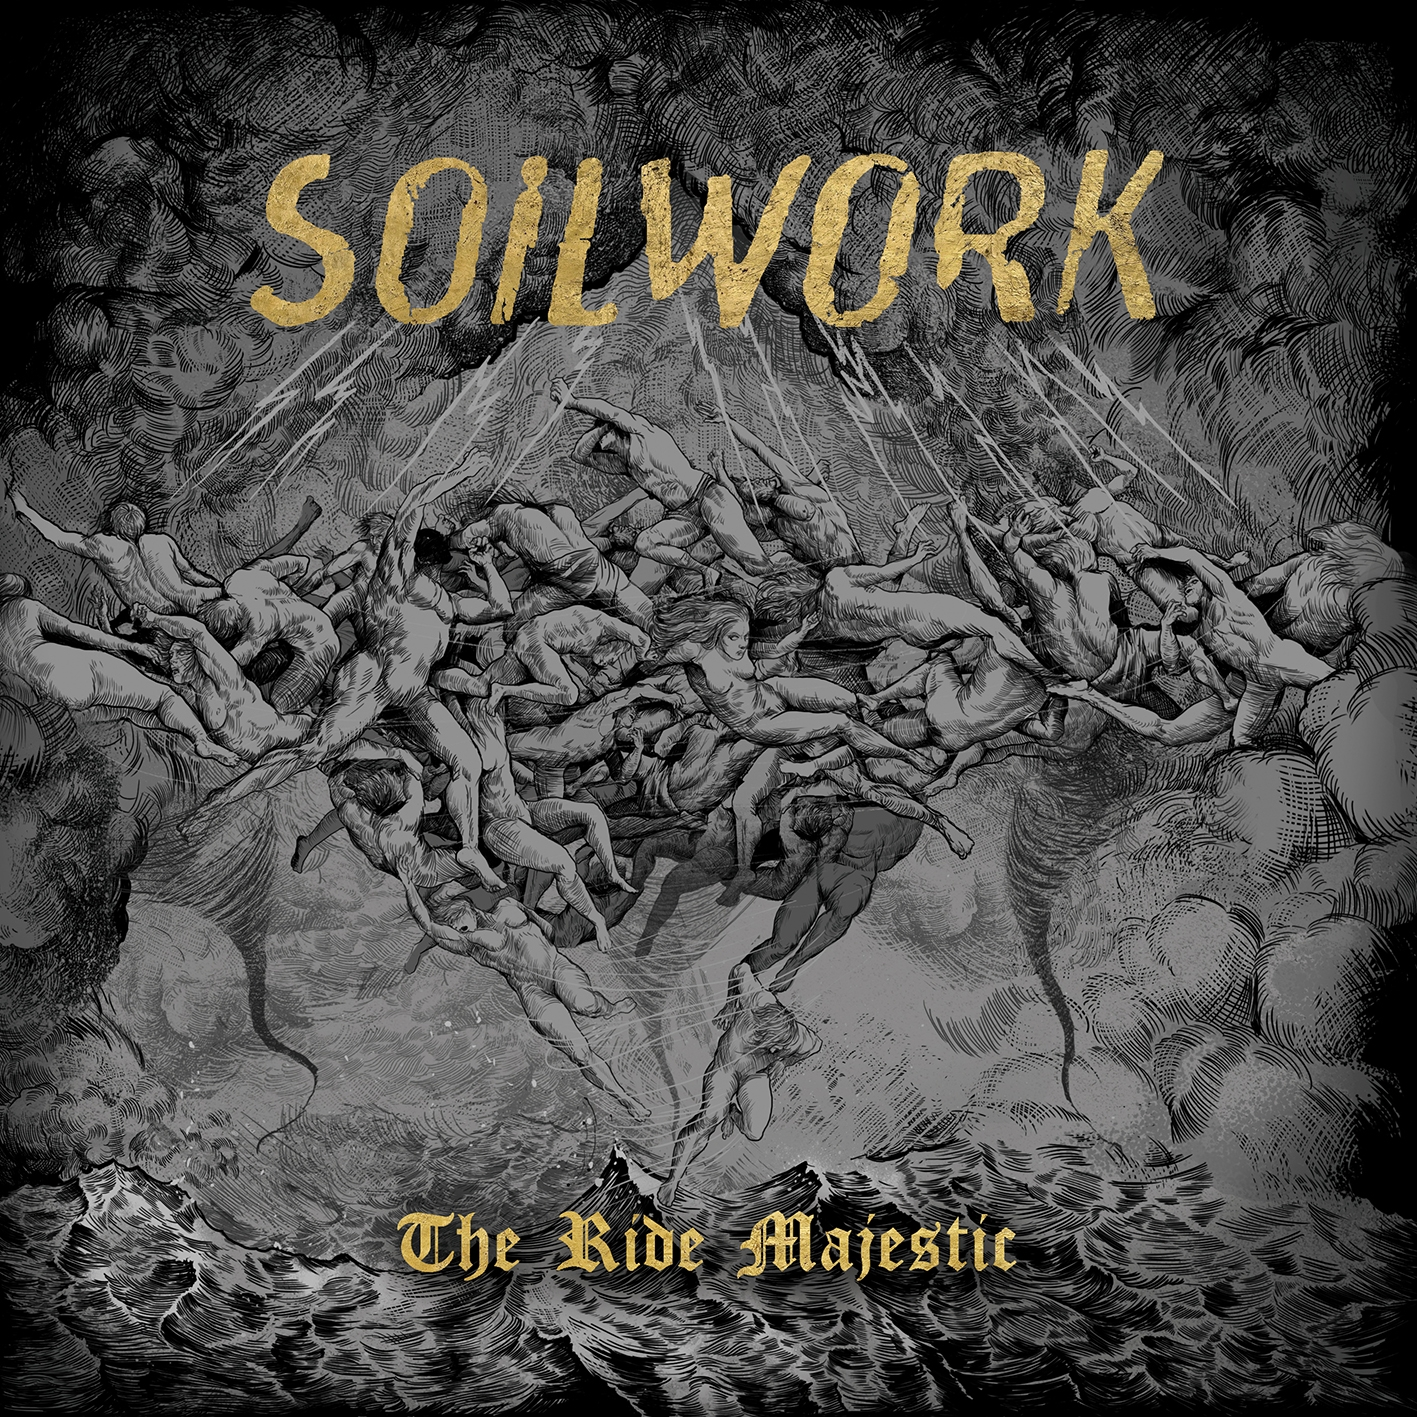 Soilwork – The Ride Majestic Review